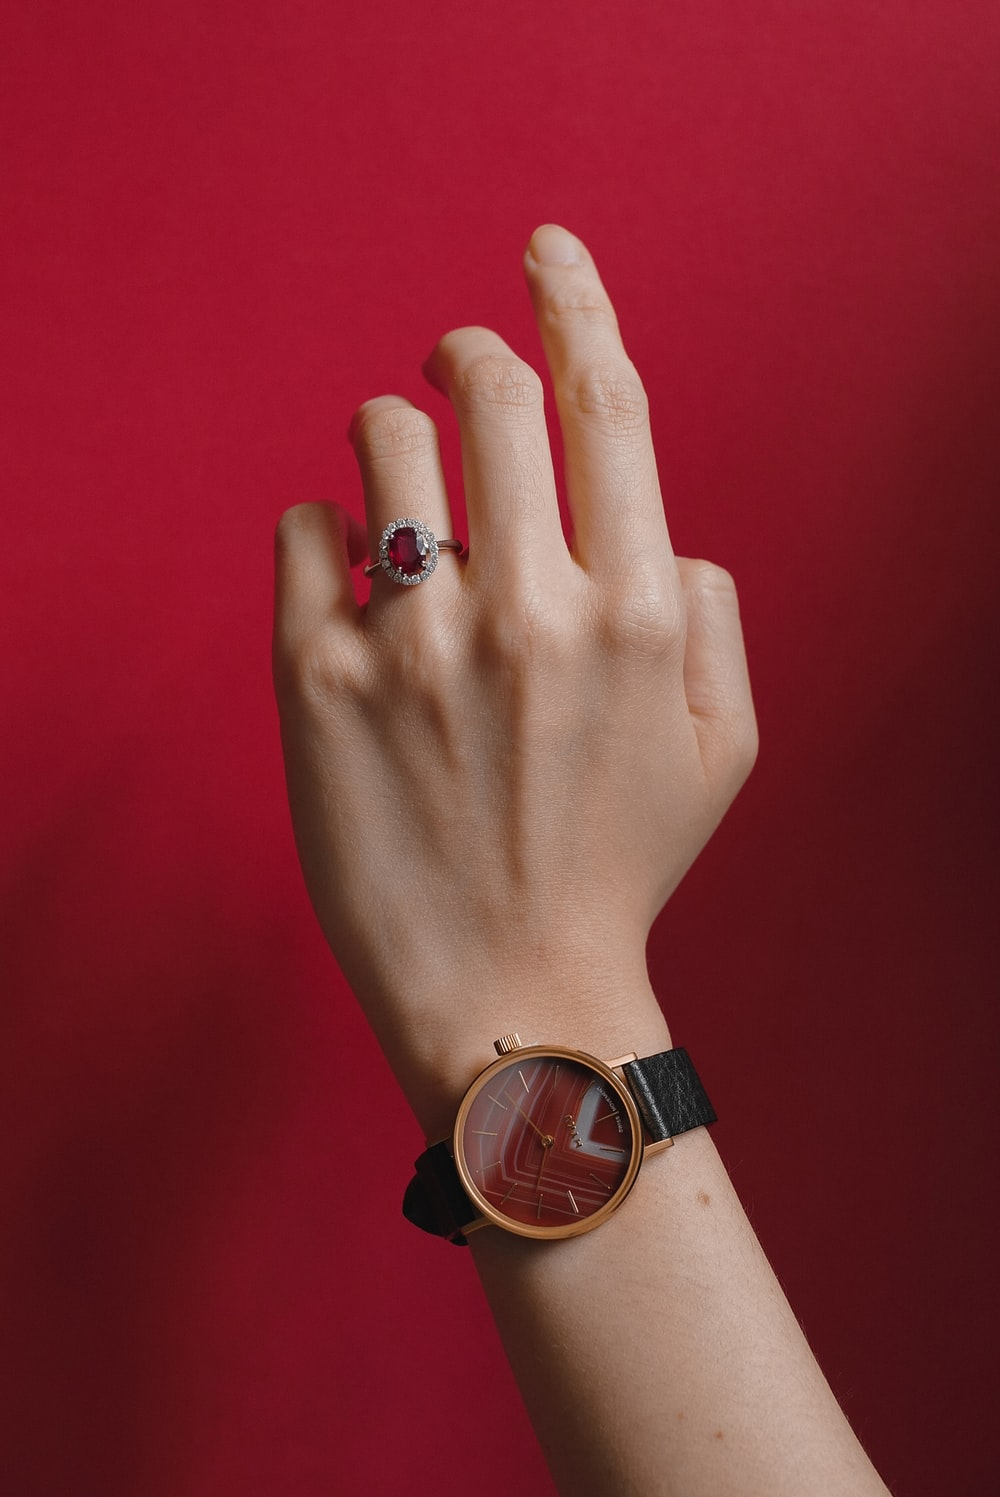 person wearing gold and black analog watch